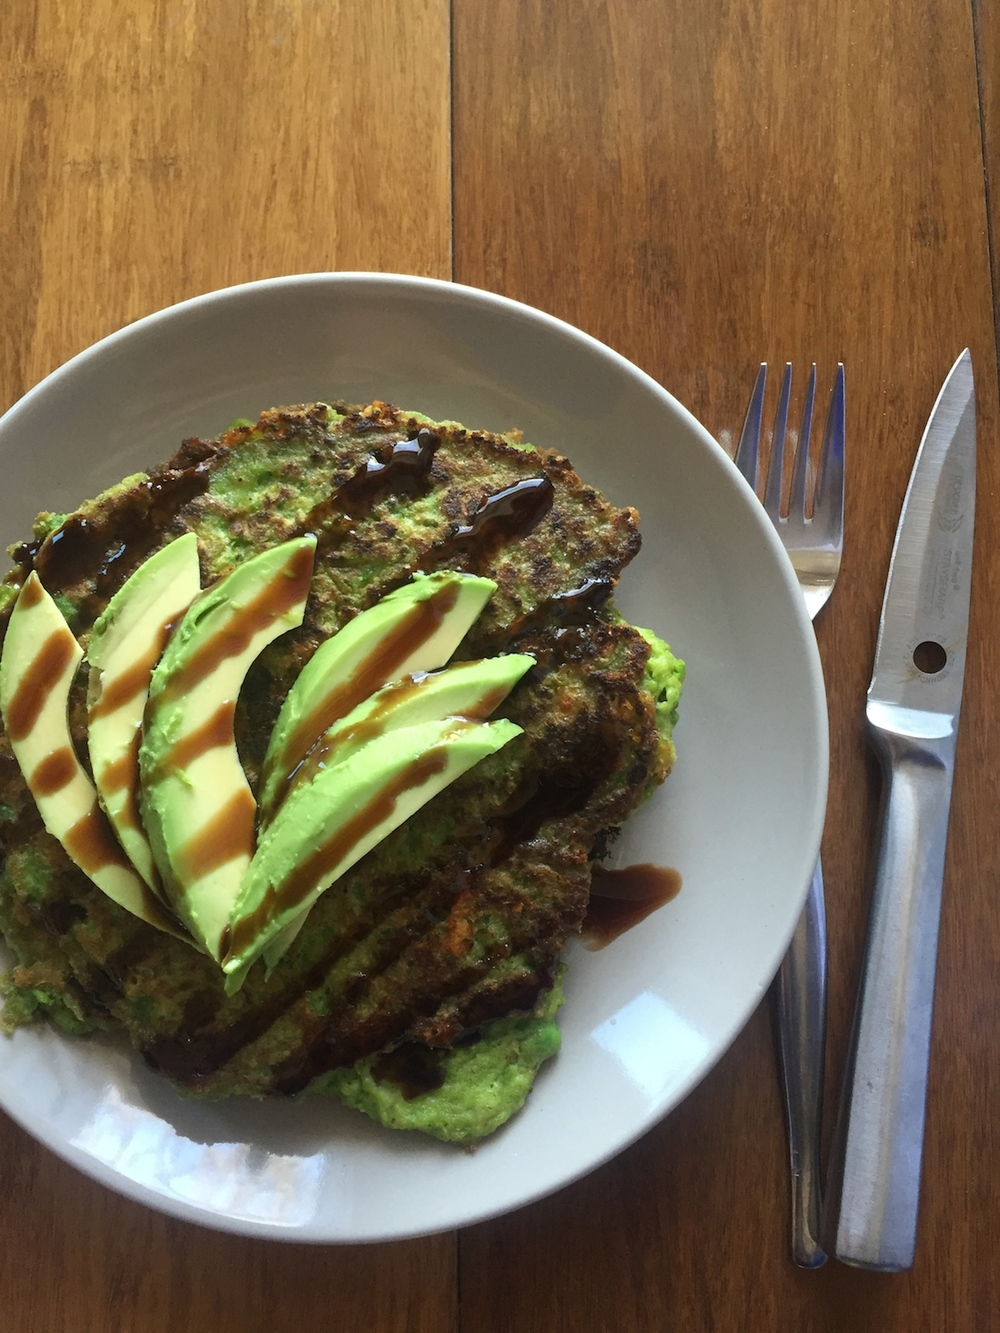 Green pea pancakes with avocado and balsamic glaze